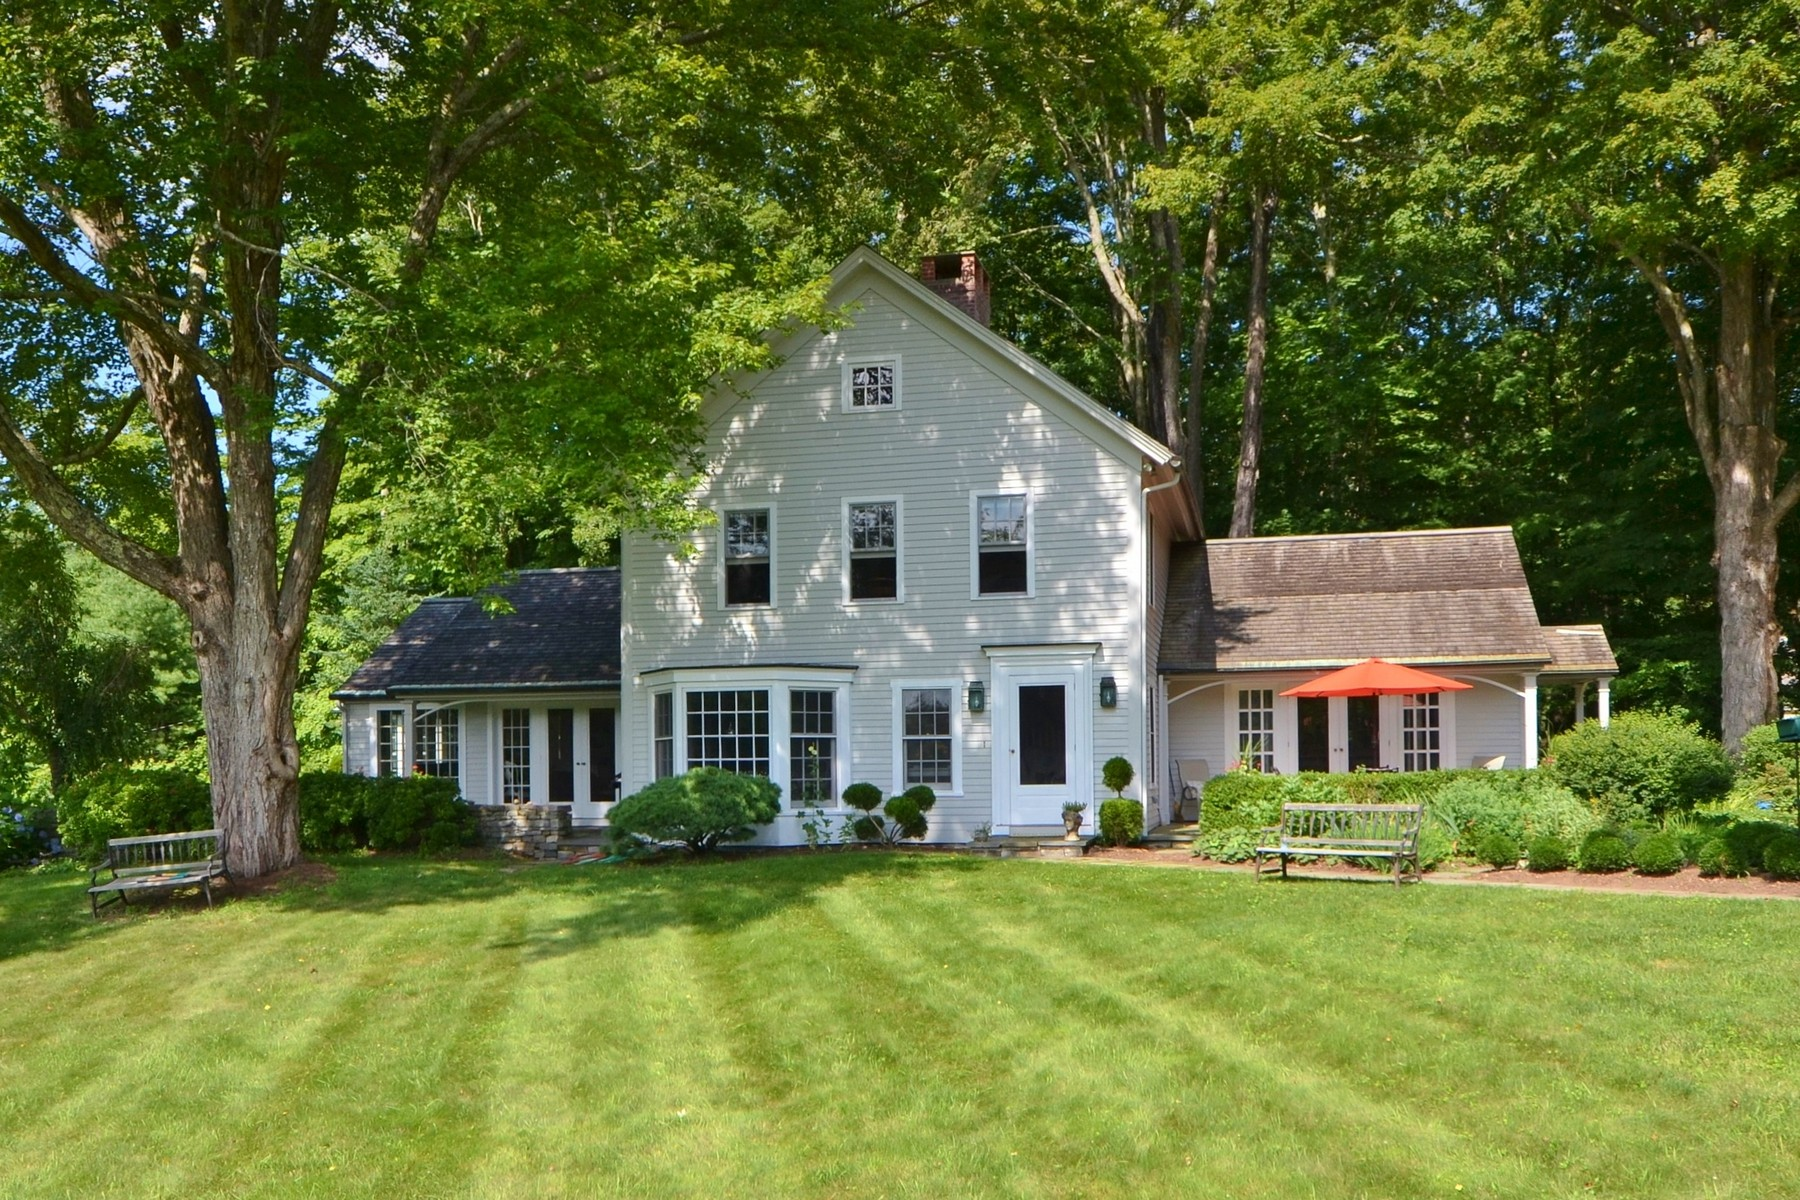 Single Family Home for Sale at Charming Colonial on Pastoral Acres Overlooking Mill Pond 1 Mill Pond Lane Old Lyme, Connecticut 06371 United States